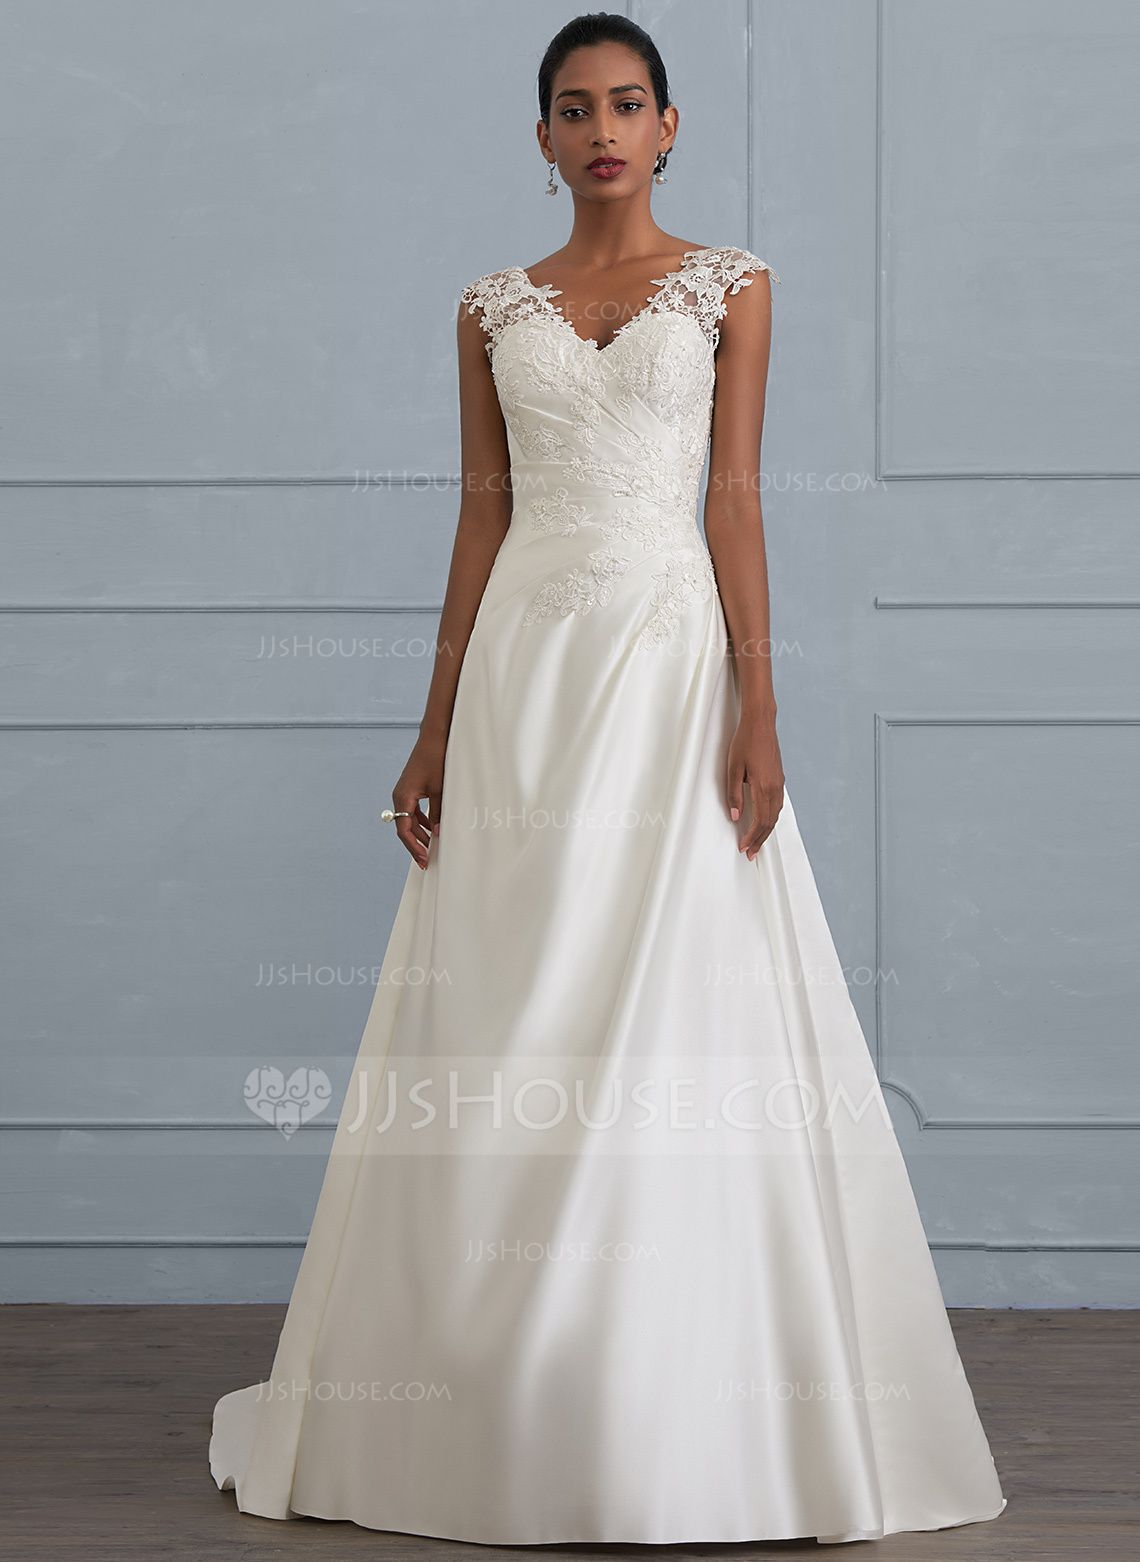 Top 22 Beach Wedding Dresses Ideas to Stand You out | Ball gowns ...